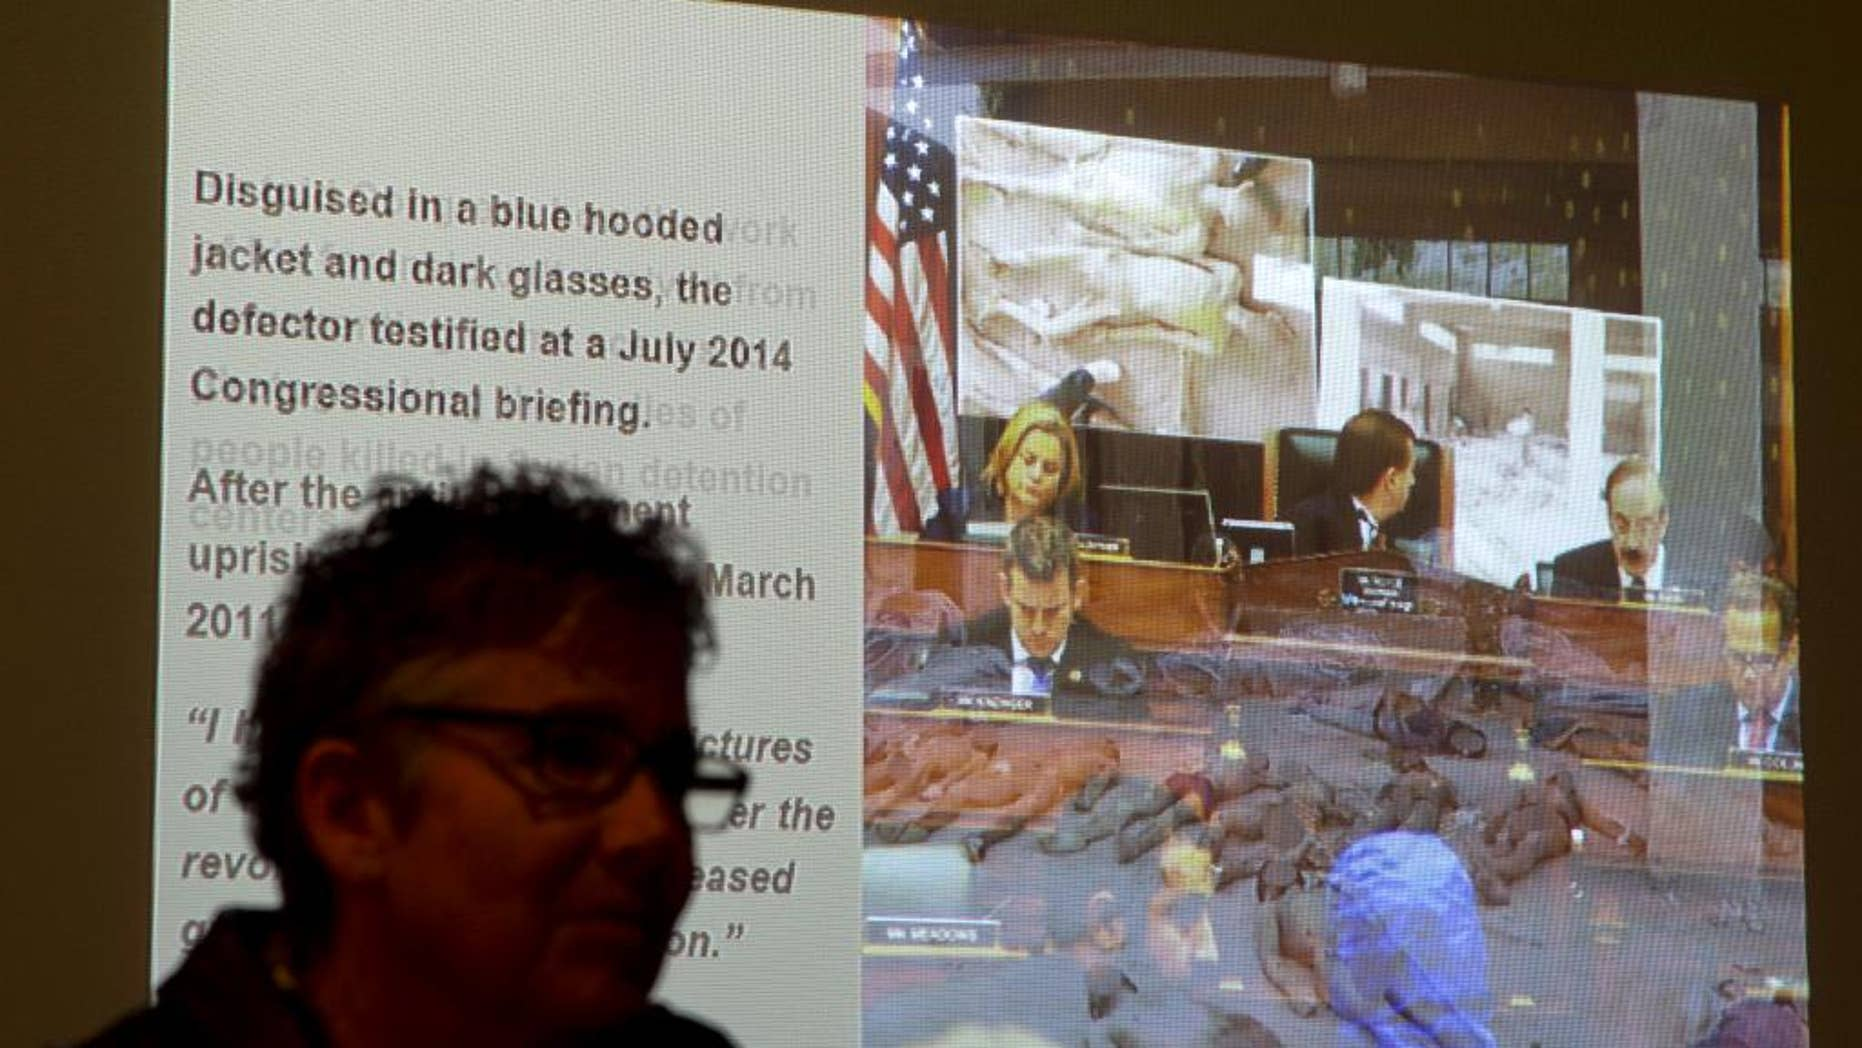 "FILE - In this Oct. 15, 2014, file photo, US Holocaust Memorial Museum visitor Marianne Kast, from Fresno, Calif., watches a slide show presentation of images of emaciated and mangled bodies from recent history in Syria in an exhibit entitled ""Genocide: The Threat Continues,"" at the museum in Washington. Almost helpless in the U.N. Security Council to take strong action on Syria, the United States and other states are hoping to shame its government by sponsoring a graphic photo exhibit of detainees who've died in President Bashar Assad's prisons since the country's conflict began. Fifteen countries will join the opposition Syrian National Coalition on Tuesday, March 10, 2015, at United Nations headquarters to launch the exhibit of portraits showing signs of torture and starvation and to call for an end to the crisis that enters its fifth year this month. (AP Photo/Manuel Balce Ceneta, File)"